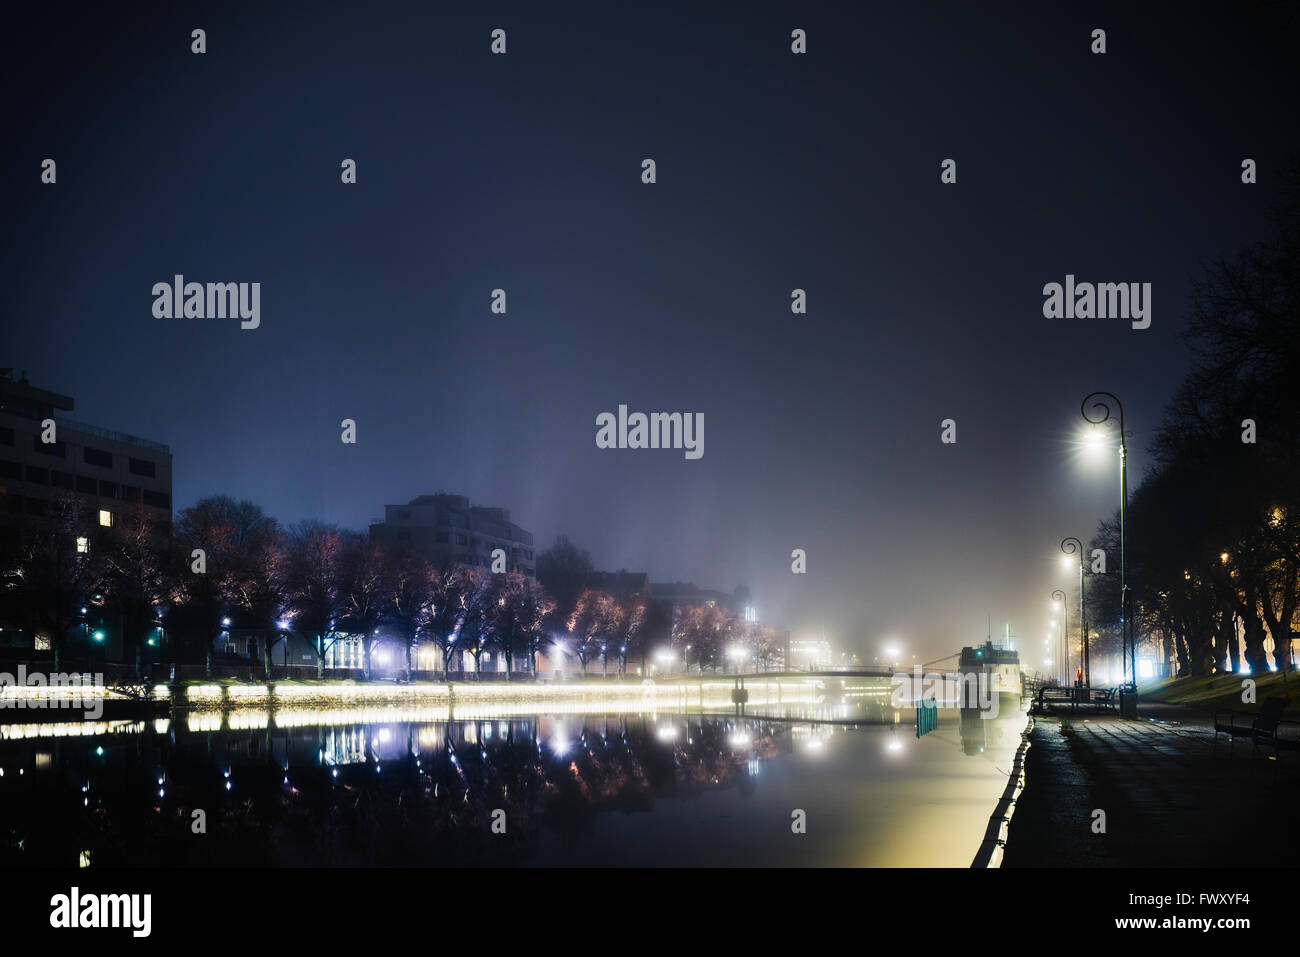 Finland, Varsinais-Suomi, Turku, Illuminated riverbank at night - Stock Image